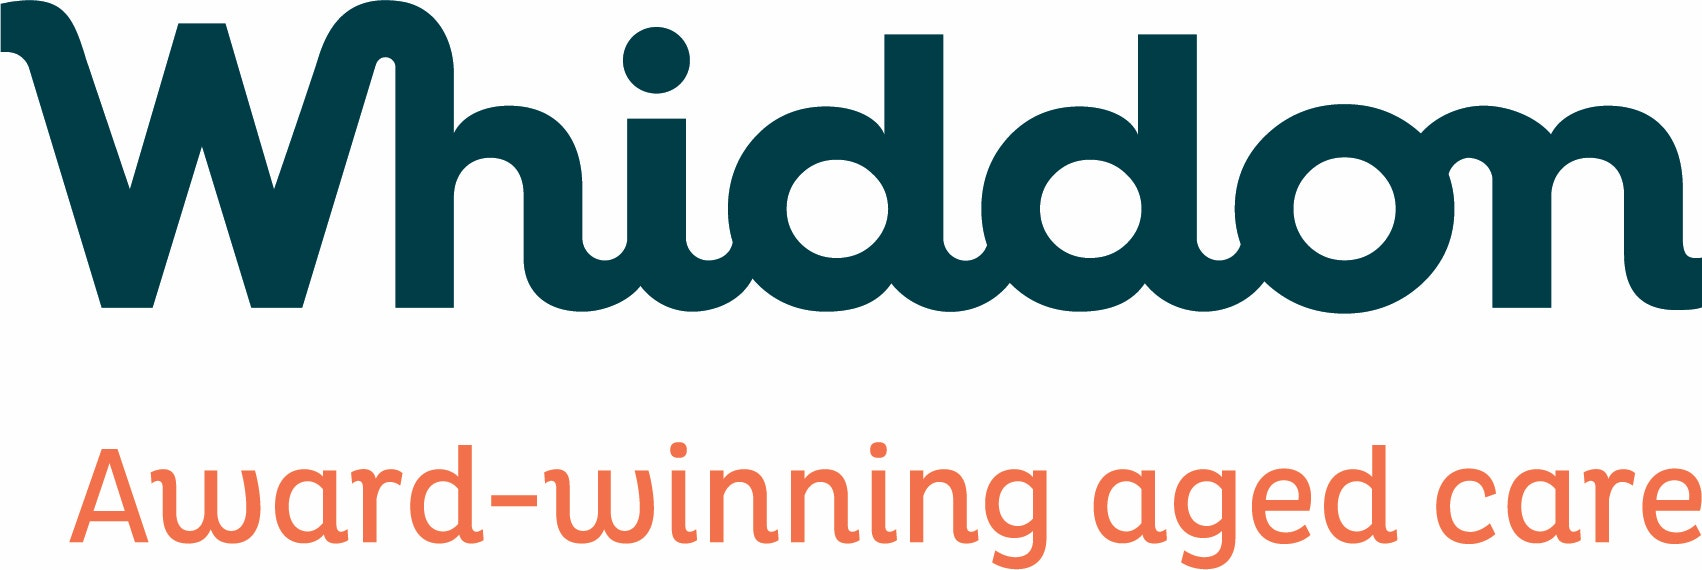 Whiddon Yamba Retirement Village logo